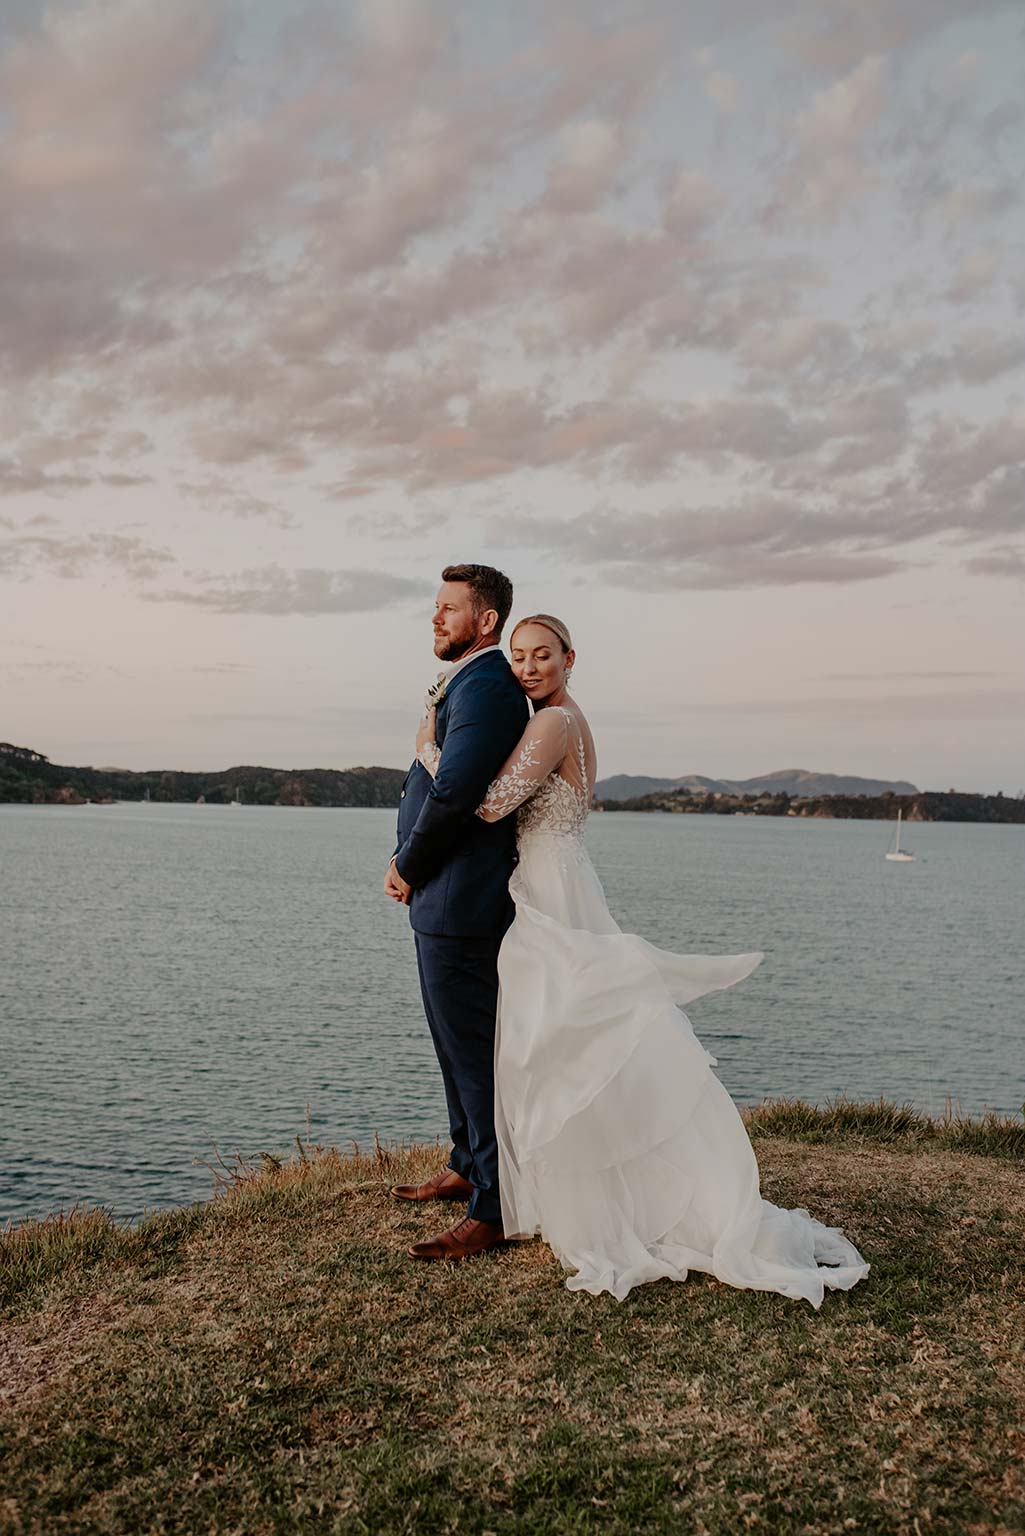 Vinka Design Features Real Weddings - bride embracing groom from the back - wearing a bespoke Makaira gown with silk-chiffon and tulle overskirt giving her a beautiful train which could be removed later on to reveal a floor length party dress - next to the ocean